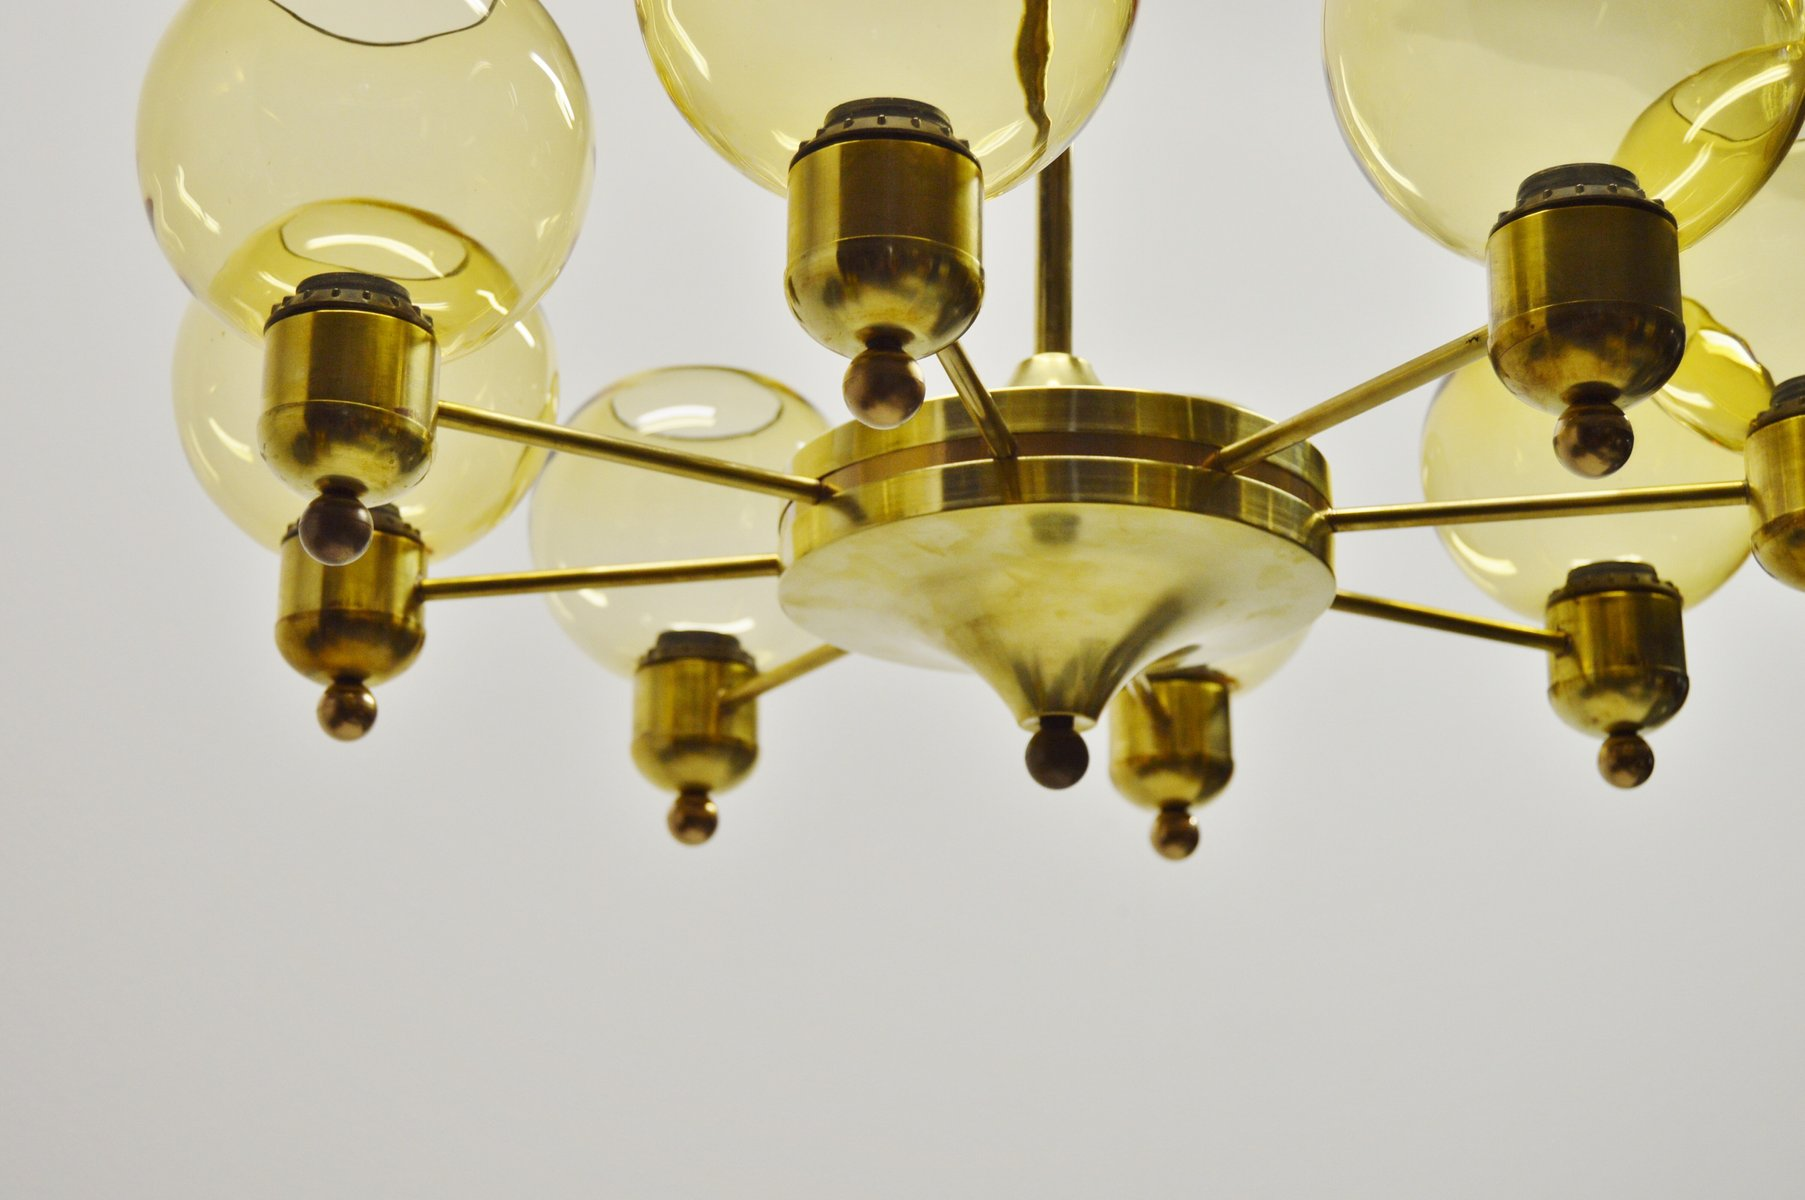 Brass Chandeliers 1960s Set Of 2 For Sale At Pamono